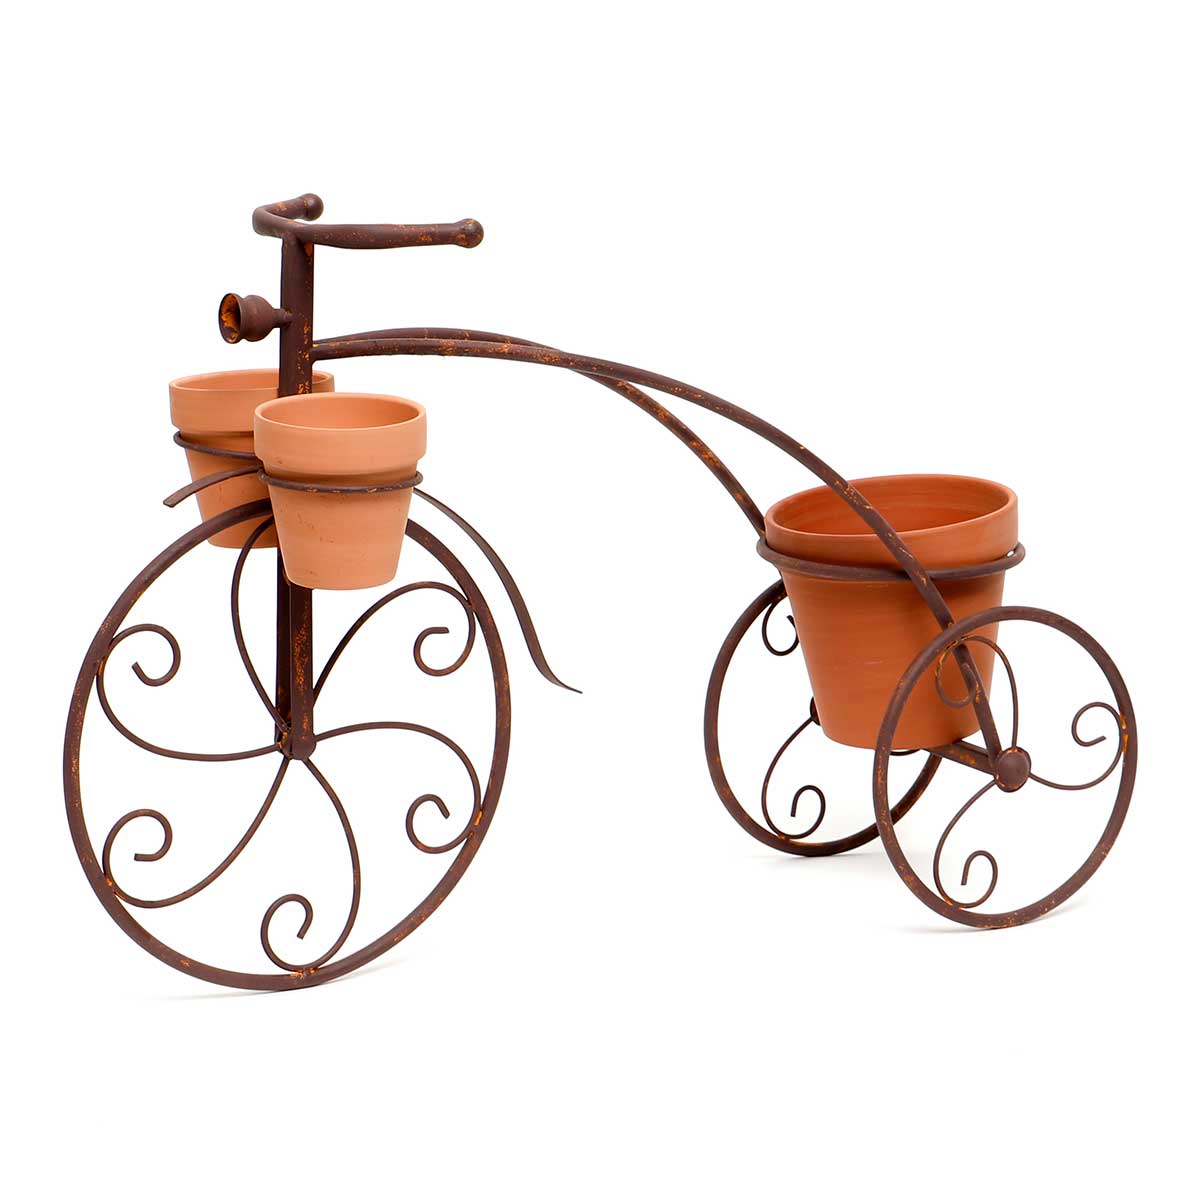 METAL GARDEN TRICYCLE WITH 3 CLAY POTS WITH DRAINAGE HOLES